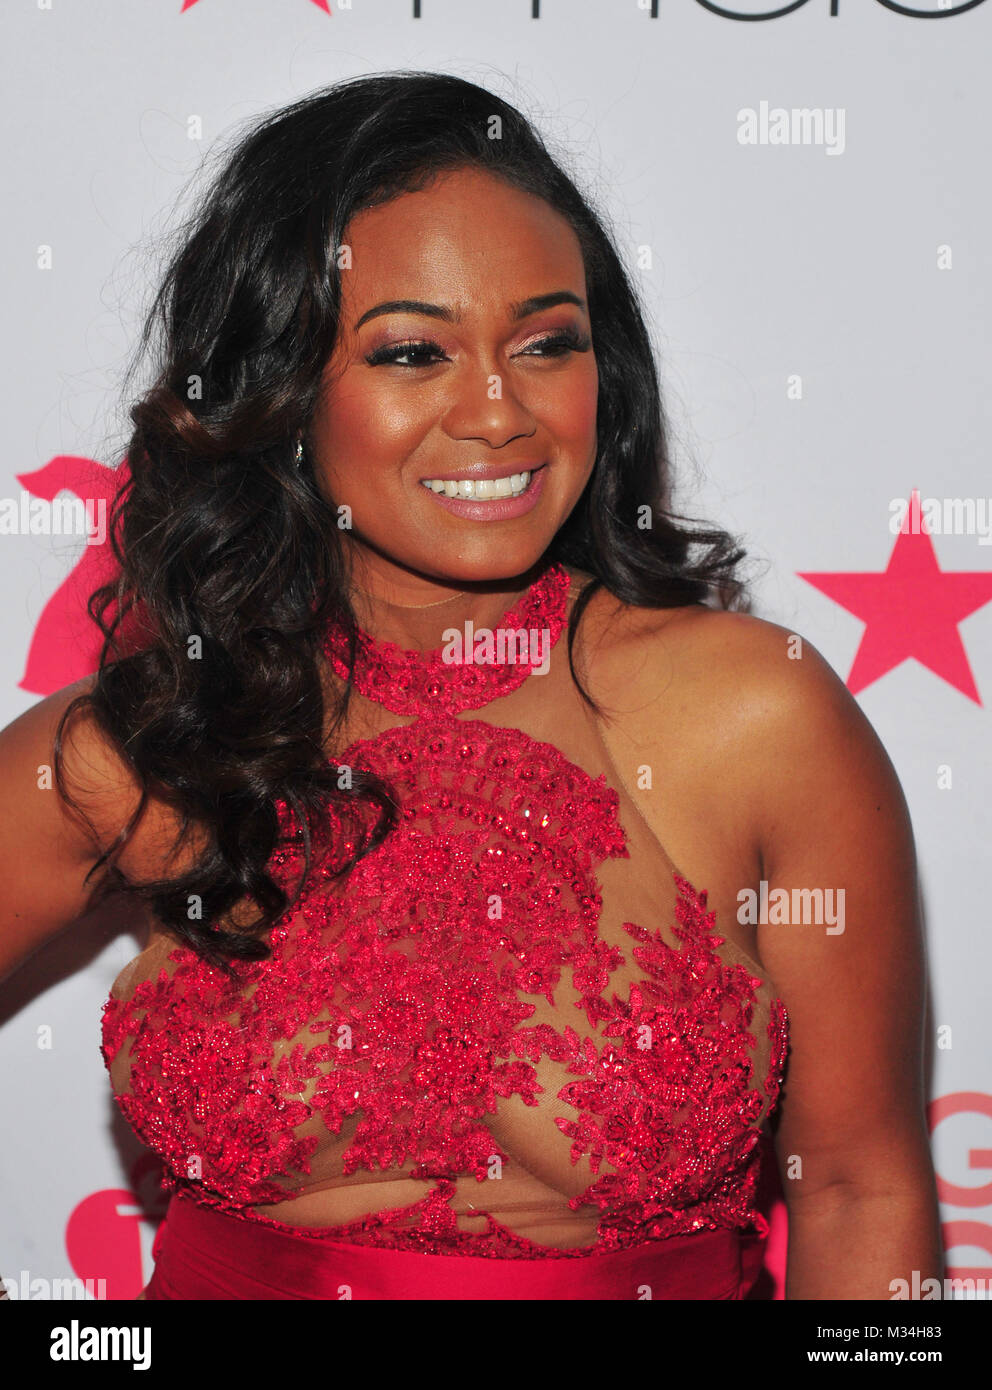 New york ny usa 8th feb 2018 tatyana ali at the red dressgo tatyana ali at the red dressgo red for women fashion show at hammerstein ballroom on february 8 2018 in new york city credit john palmermedia altavistaventures Images